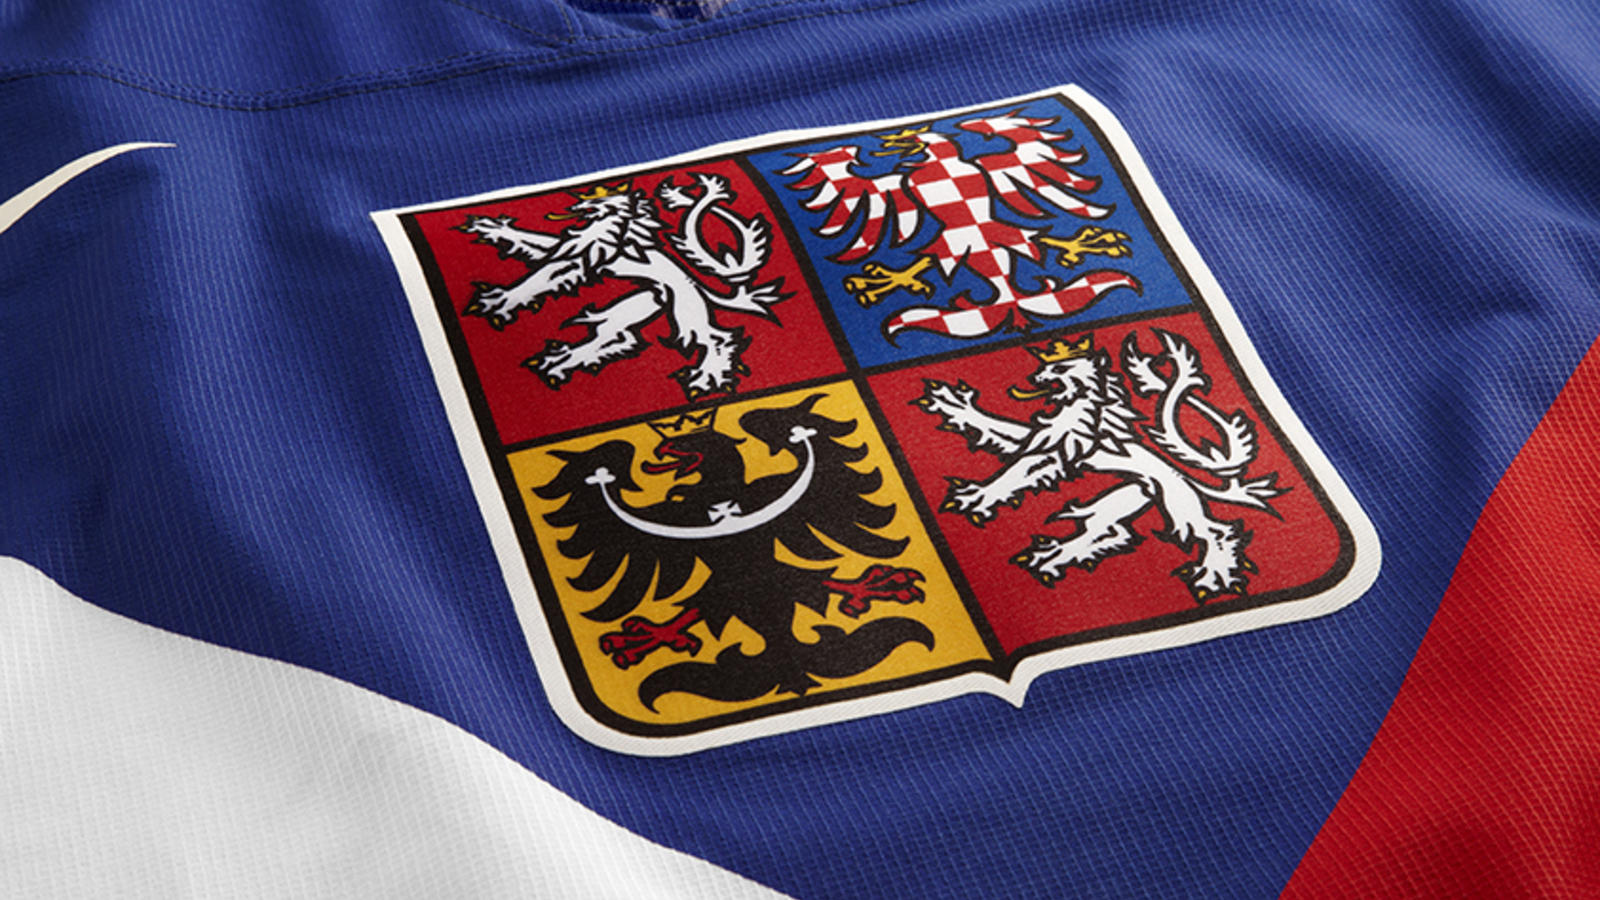 Download Wallpapers Czech Republic National Football Team: Nike Unveils 2014 Ice Hockey Jersey For The